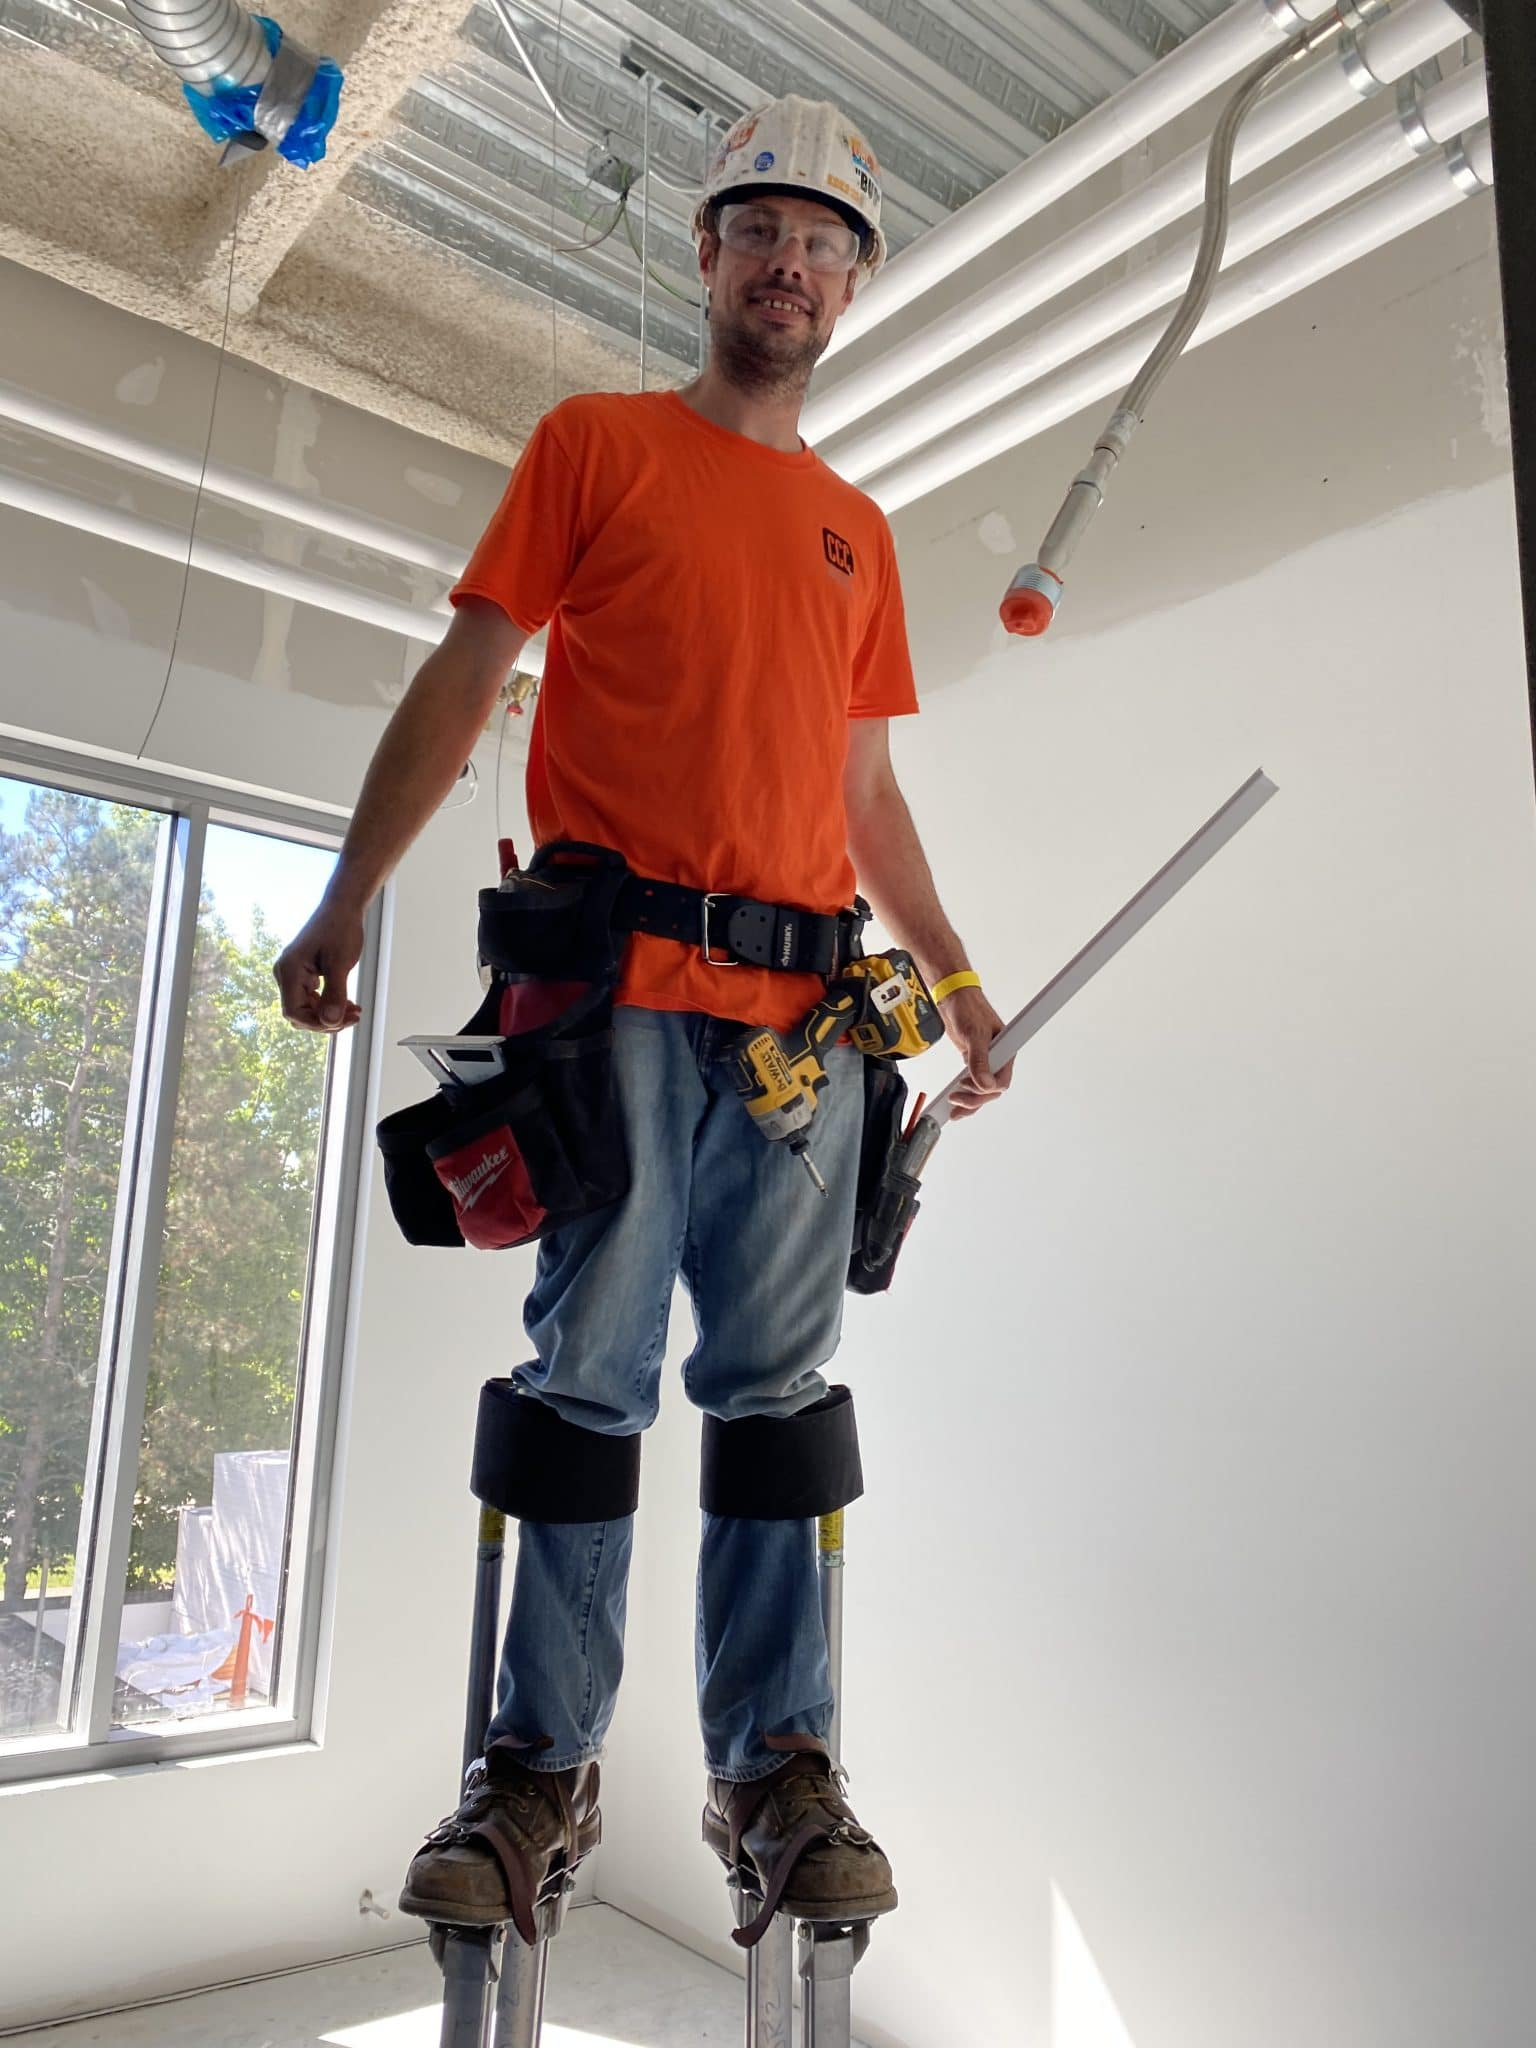 construction worker with orange shirt stands on stilts